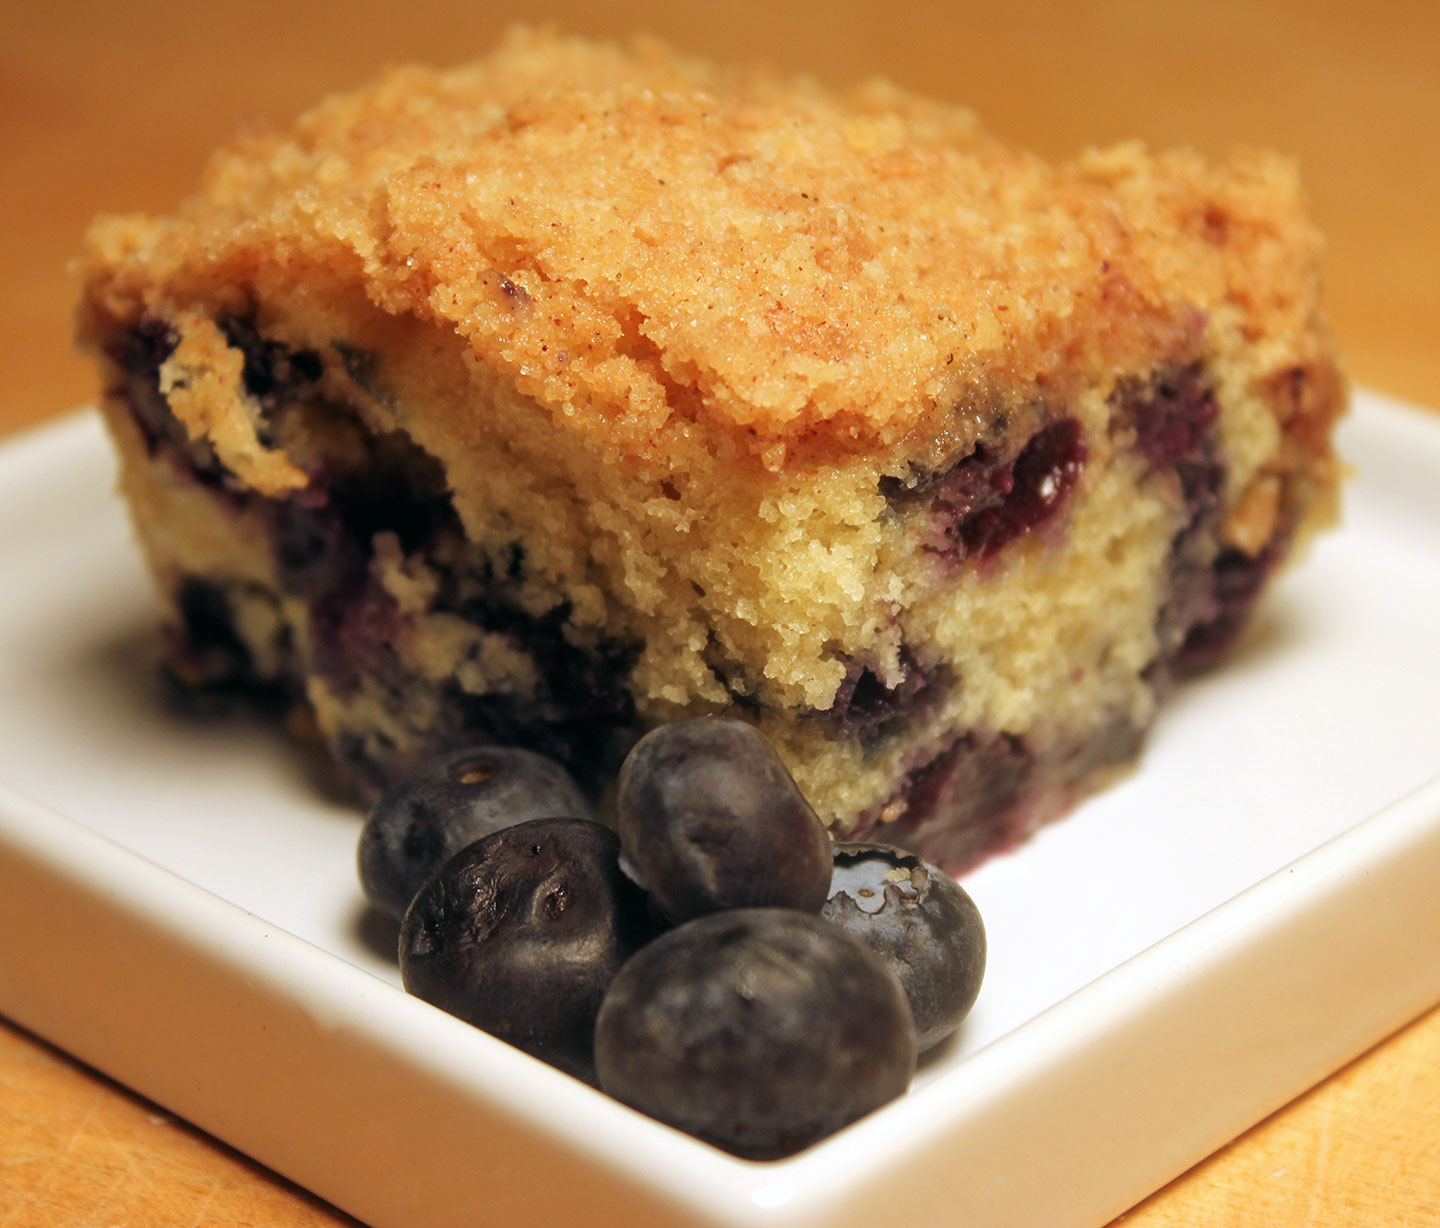 TBT Recipe: Blueberry Crumb Cake